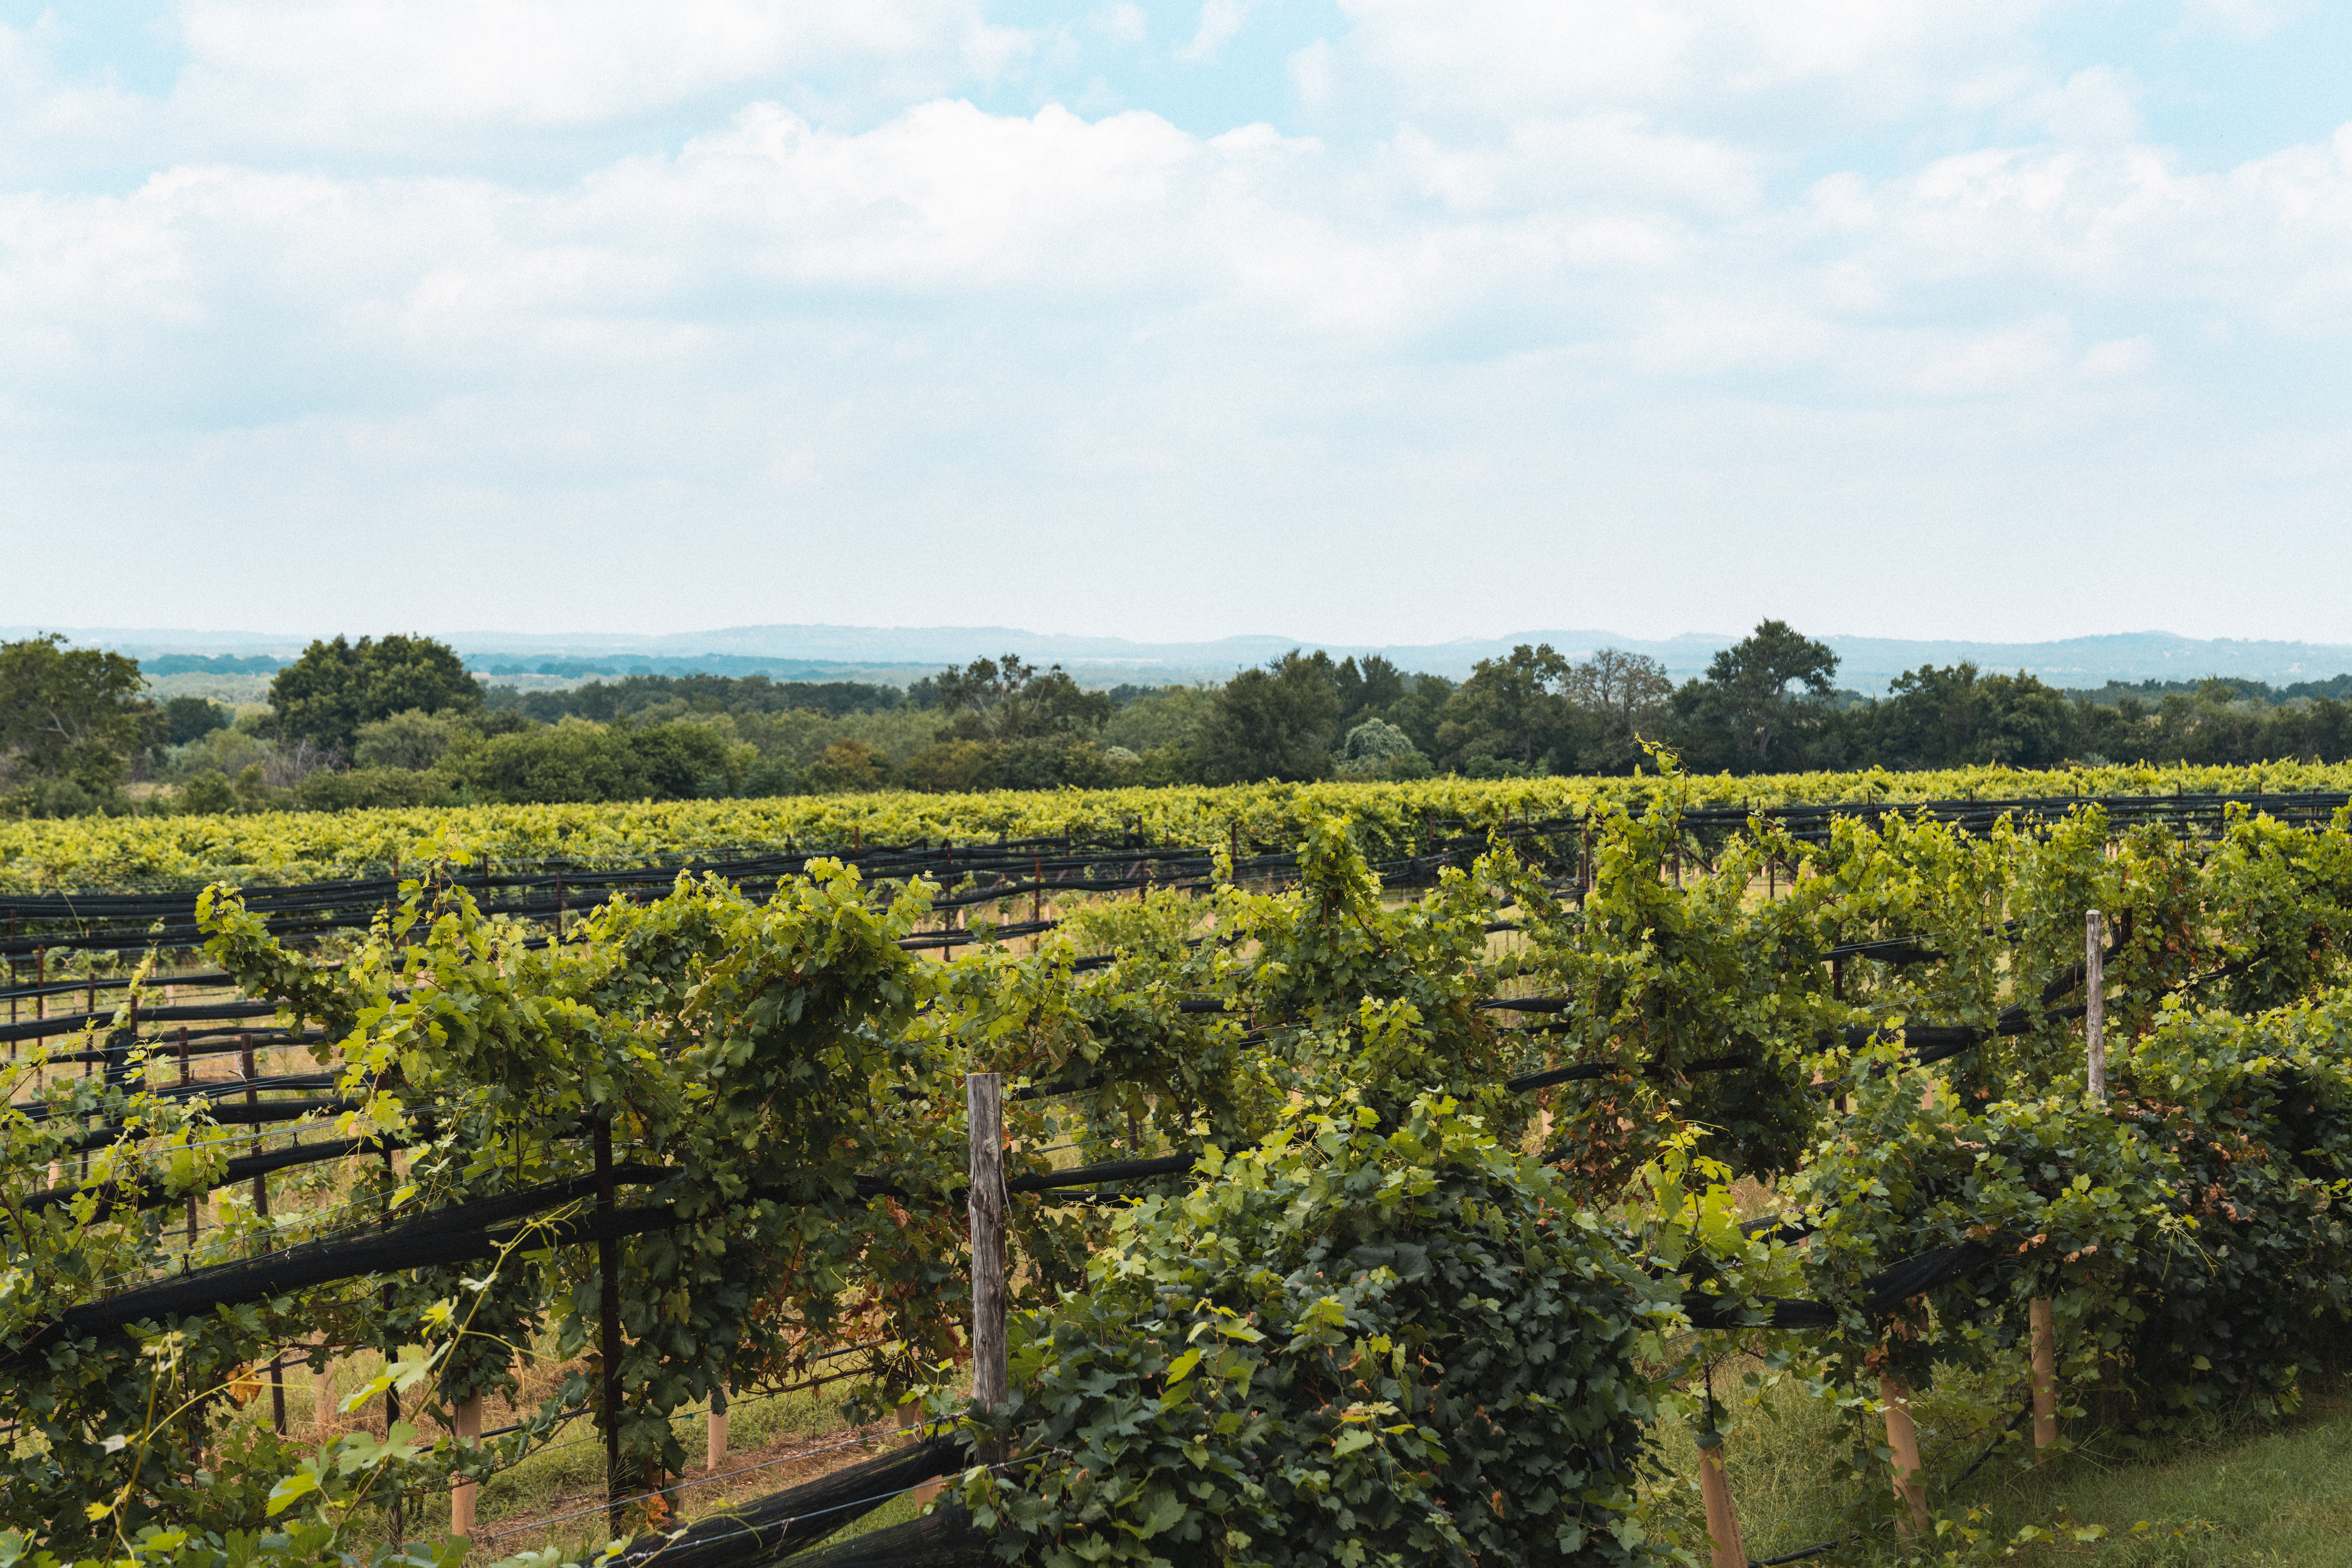 A wide shot of tows of green grapevines.